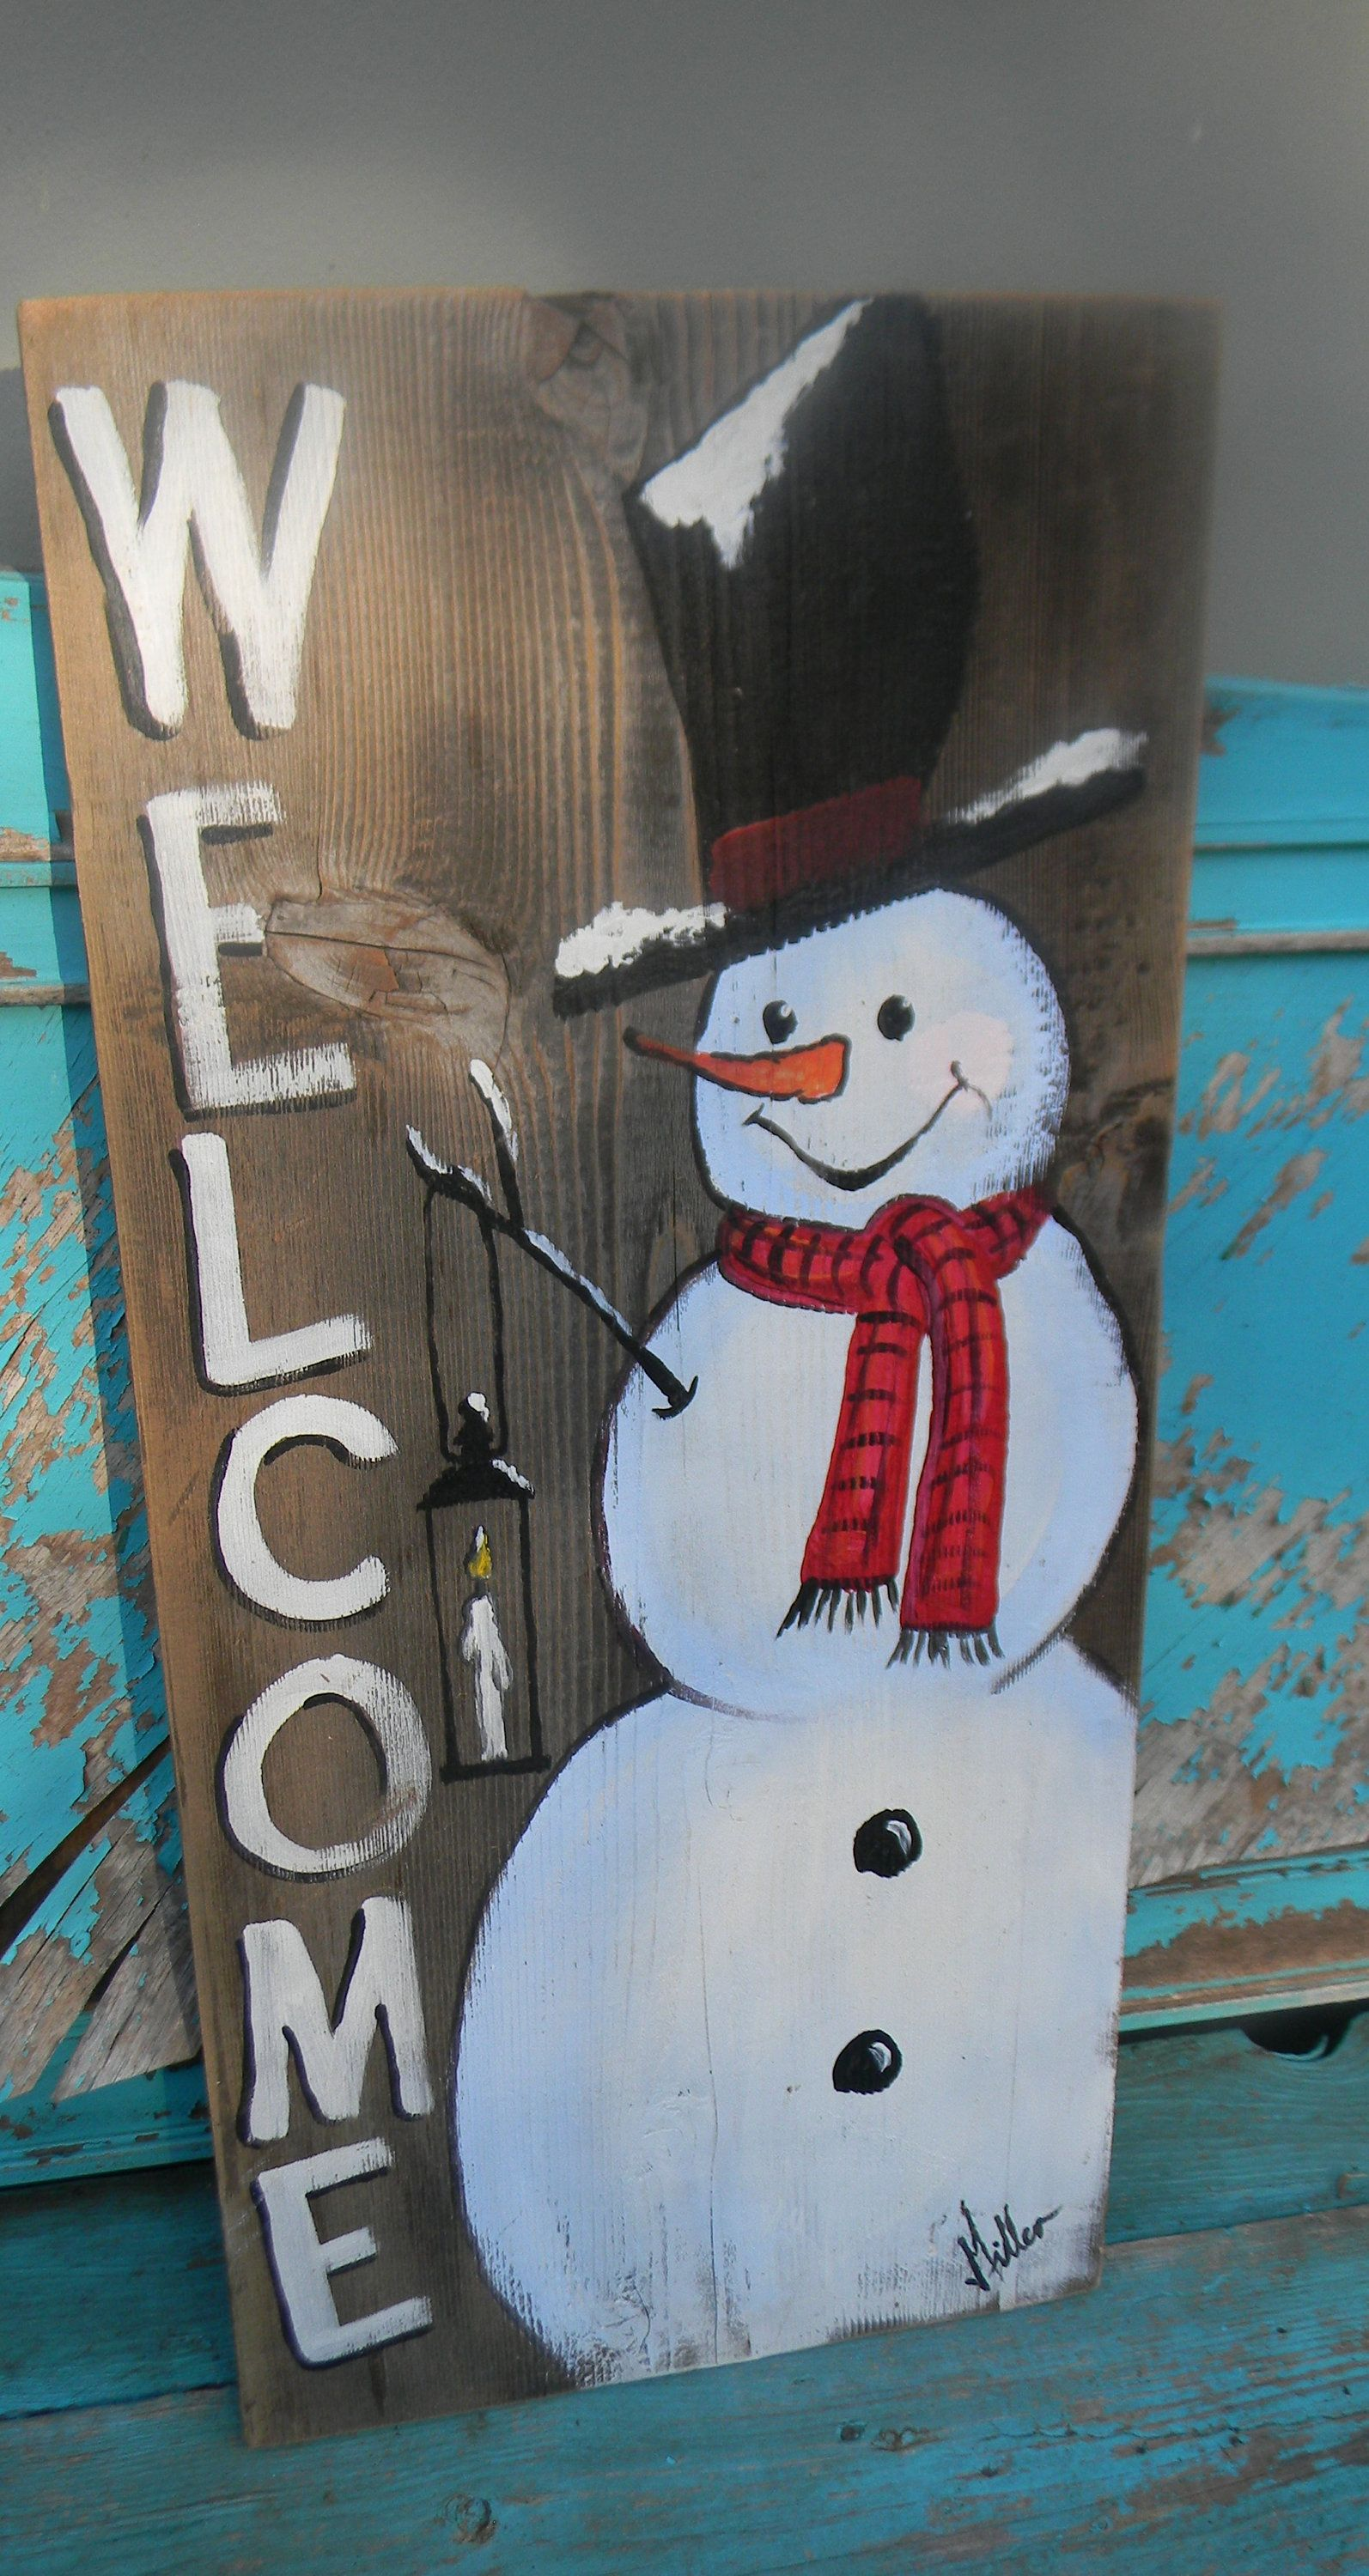 Snowman welcome wood sign hand painted front porch decor Christmas art Bill Miller of Miller's Art Cute snowman winter farmhouse decor art #porchpaintideas